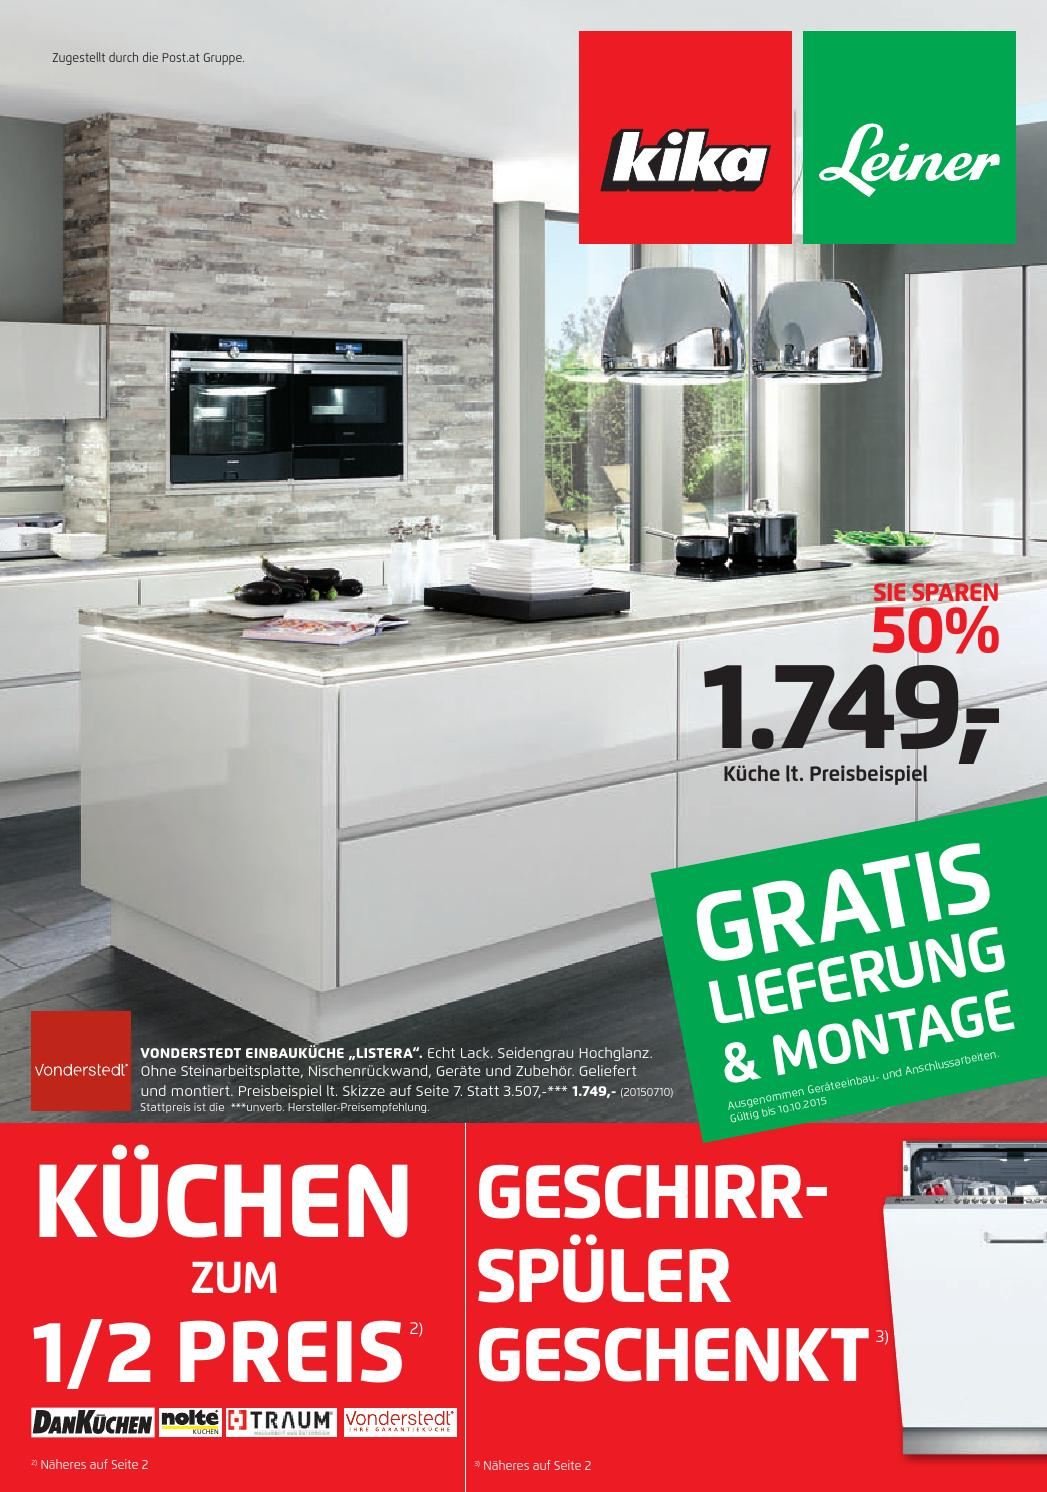 Küchen Angebote Leiner Kika Angebote 21september 10october2015 By Promoangebote At Issuu